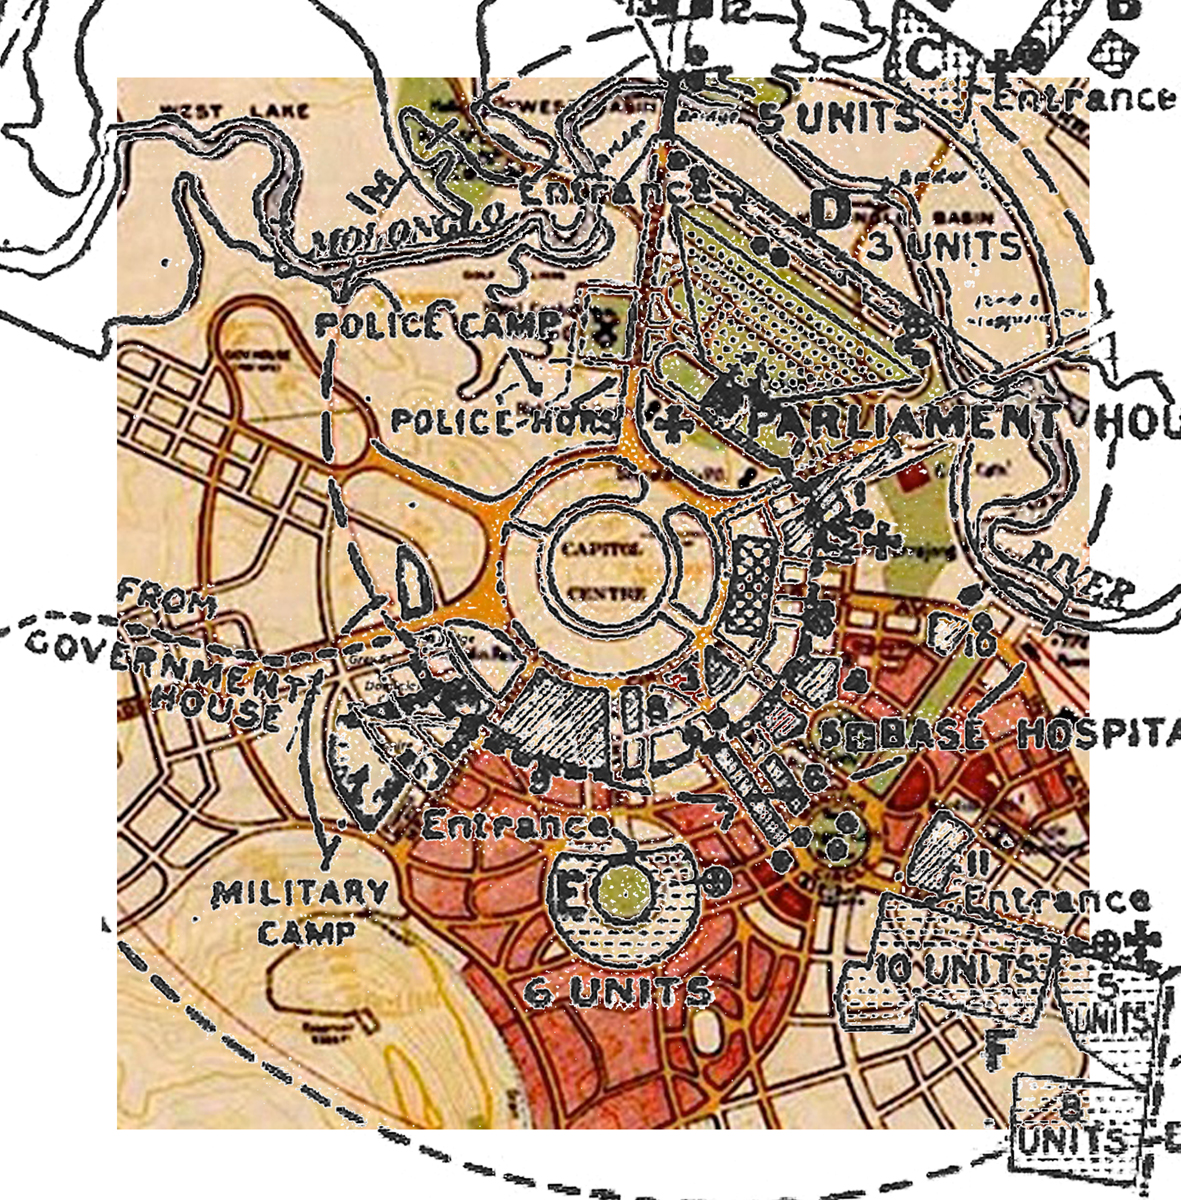 1927 overlay of camp sites on 1927 map